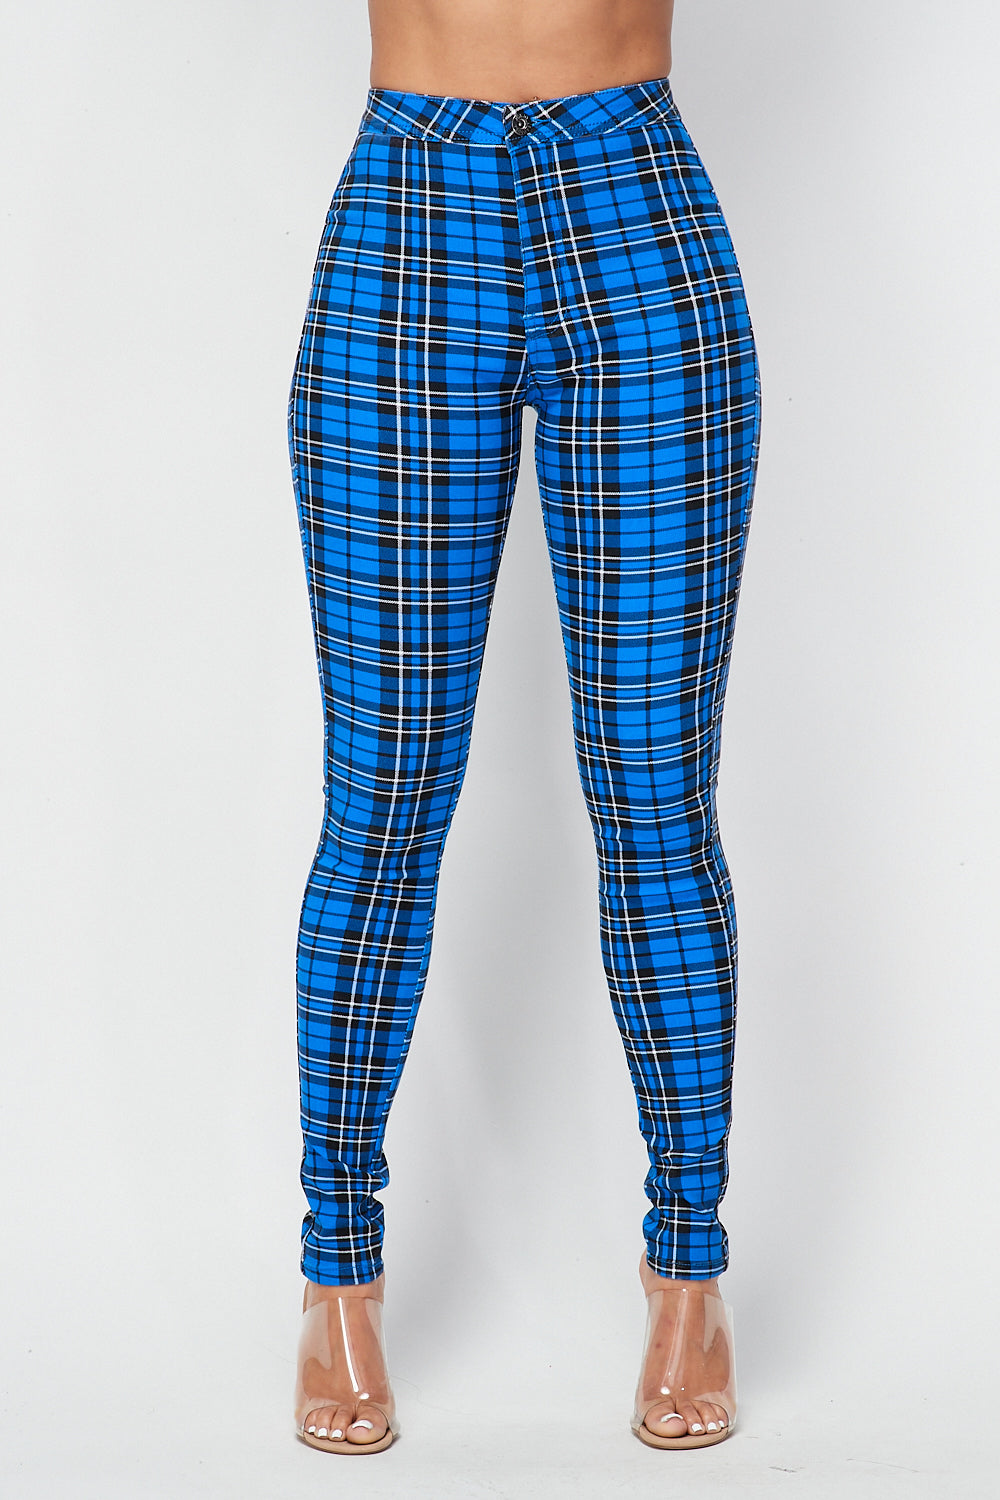 Plaid Skinny Pants in Blue - Fashion House USA